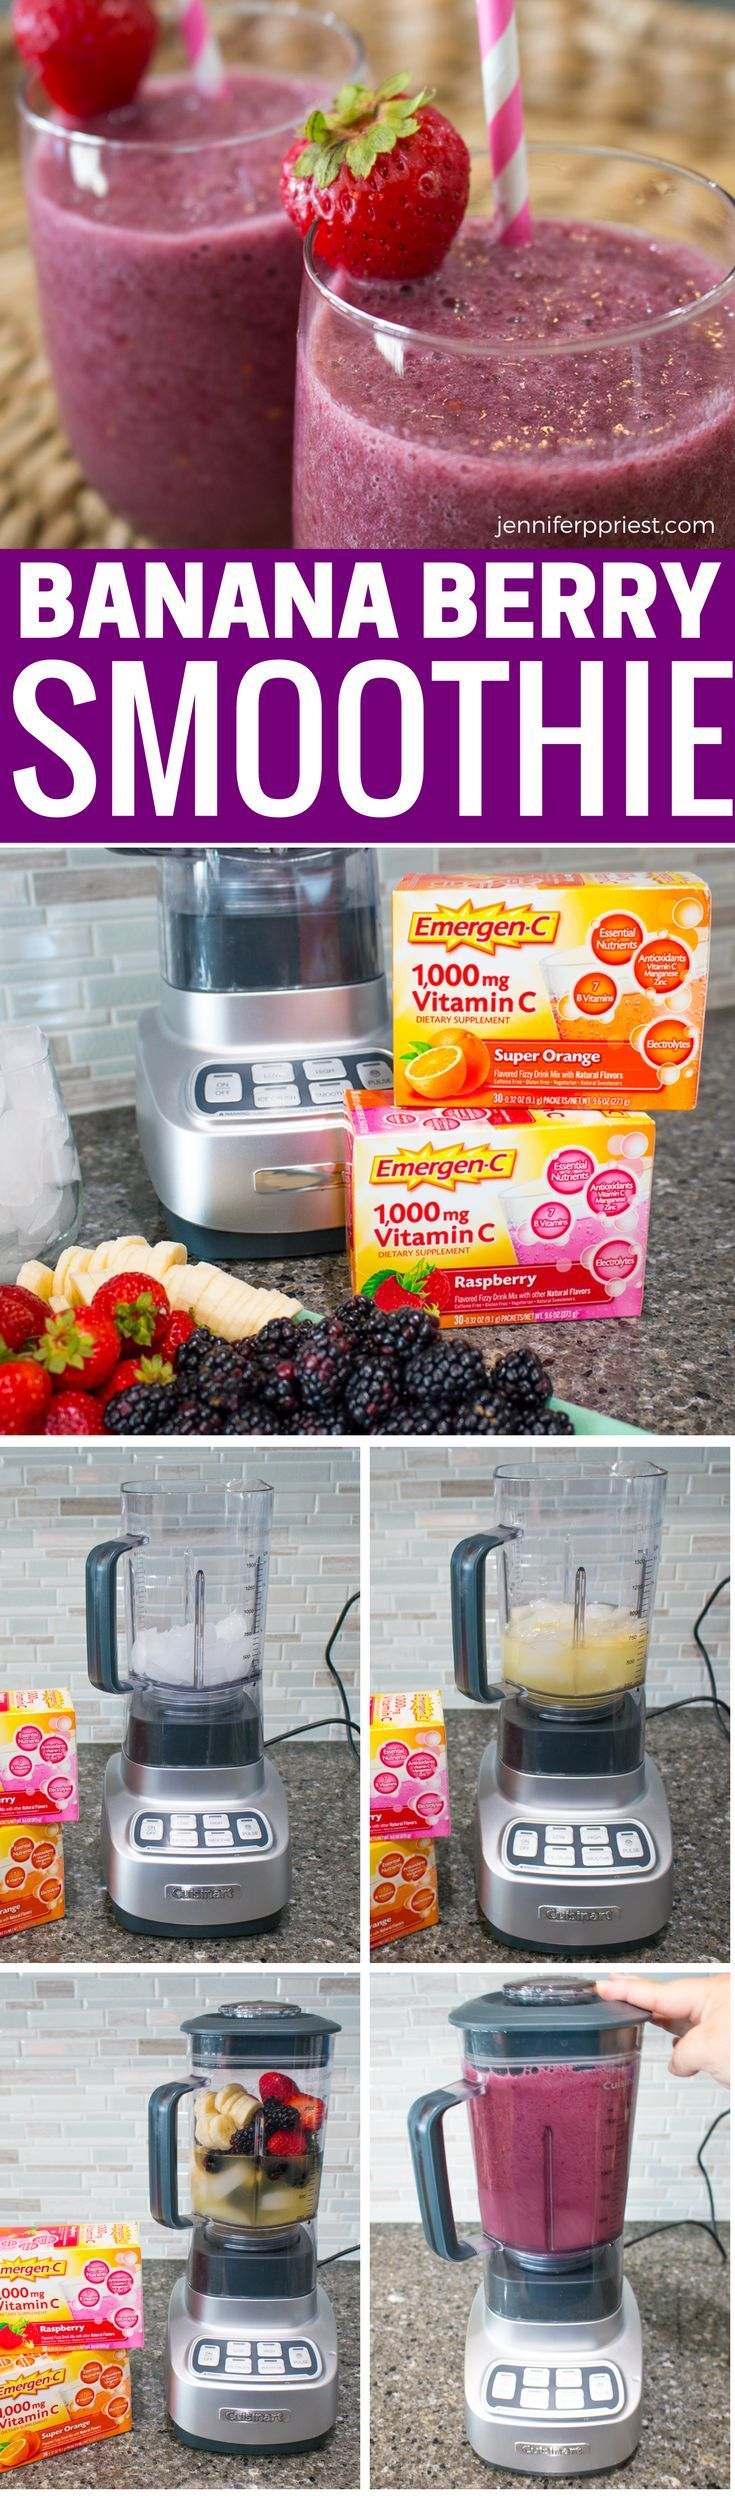 Delicious banana berry smoothie recipe with extra nutrients from Emergen-C - get the recipe for these dairy free, vegetarian, paleo-friendly,  gluten free smoothies from jenniferppriest.com